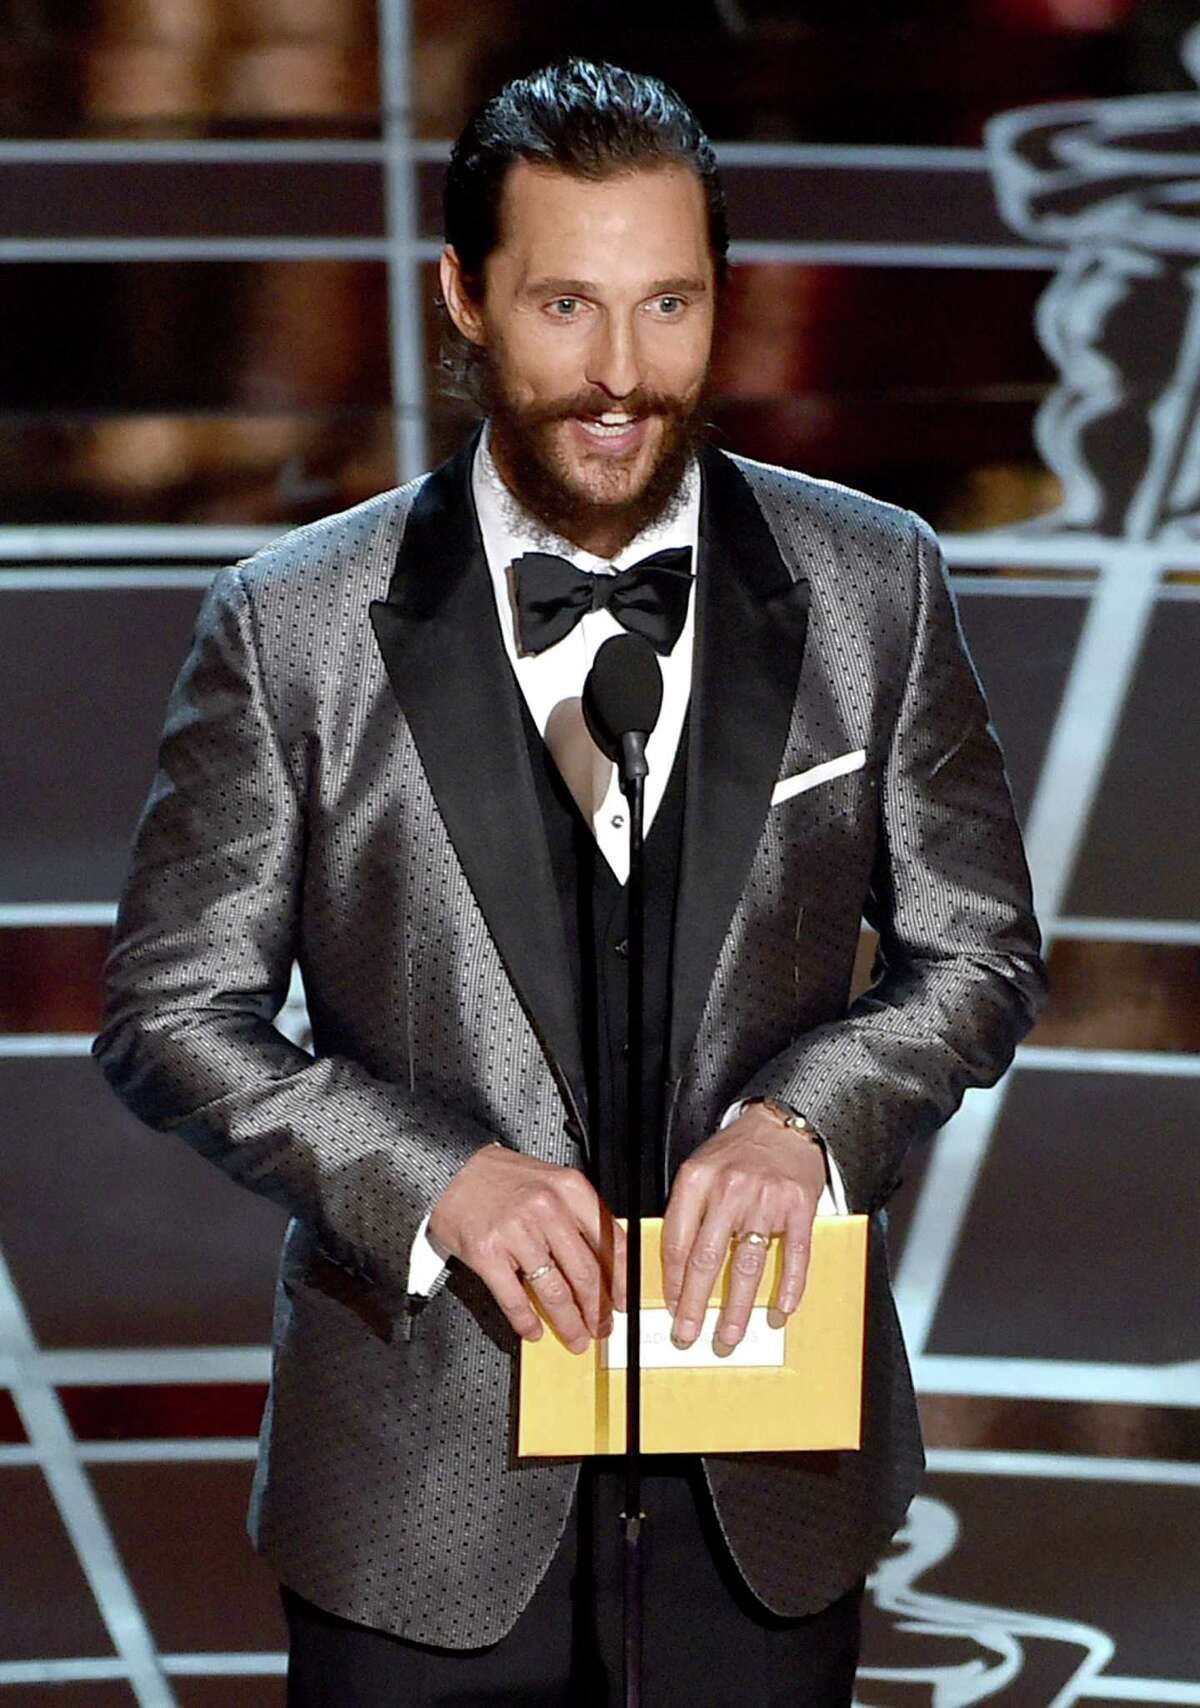 #2: The 87th Annual Academy Awards Sunday, Feb. 22, 2015Channel 13Total viewers: 737,083